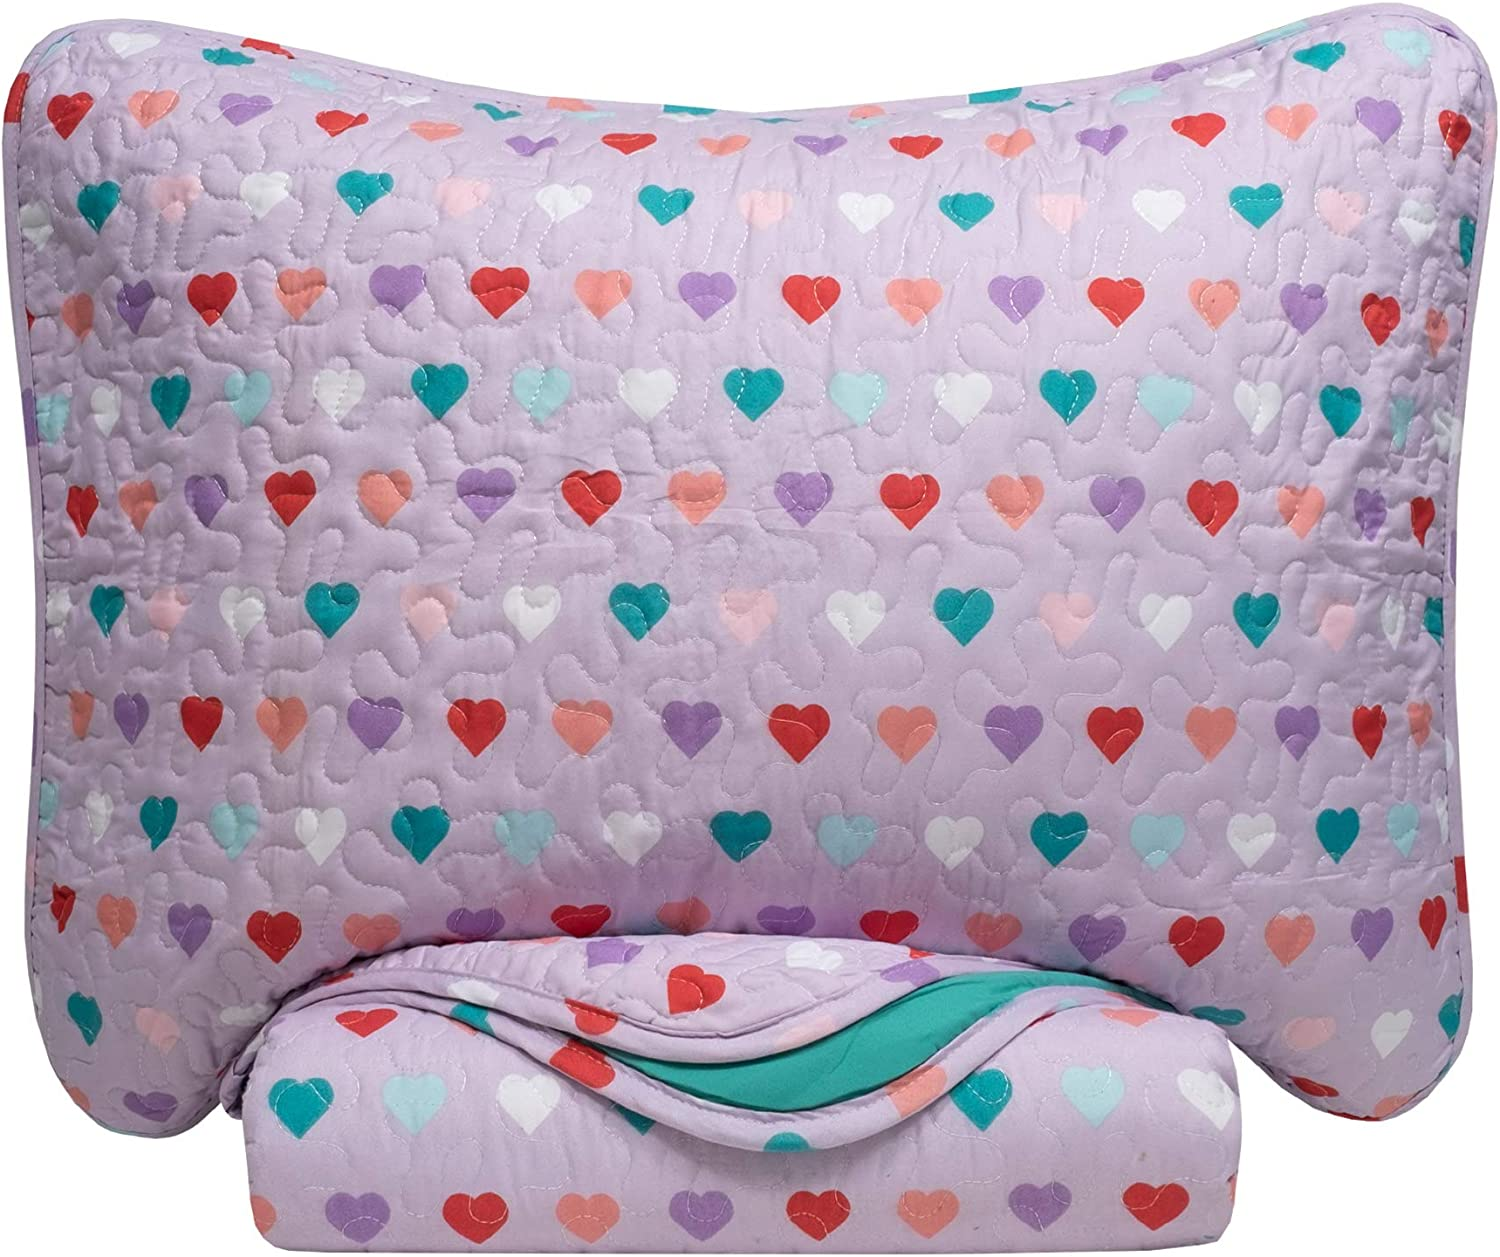 Sweet Home Collection 3 Piece Quilt Set Kids Design Fun Colorful and Comfortable Boys and Girls Toddler Hypoallergenic Soft Bedding, Full/Queen, Hearts